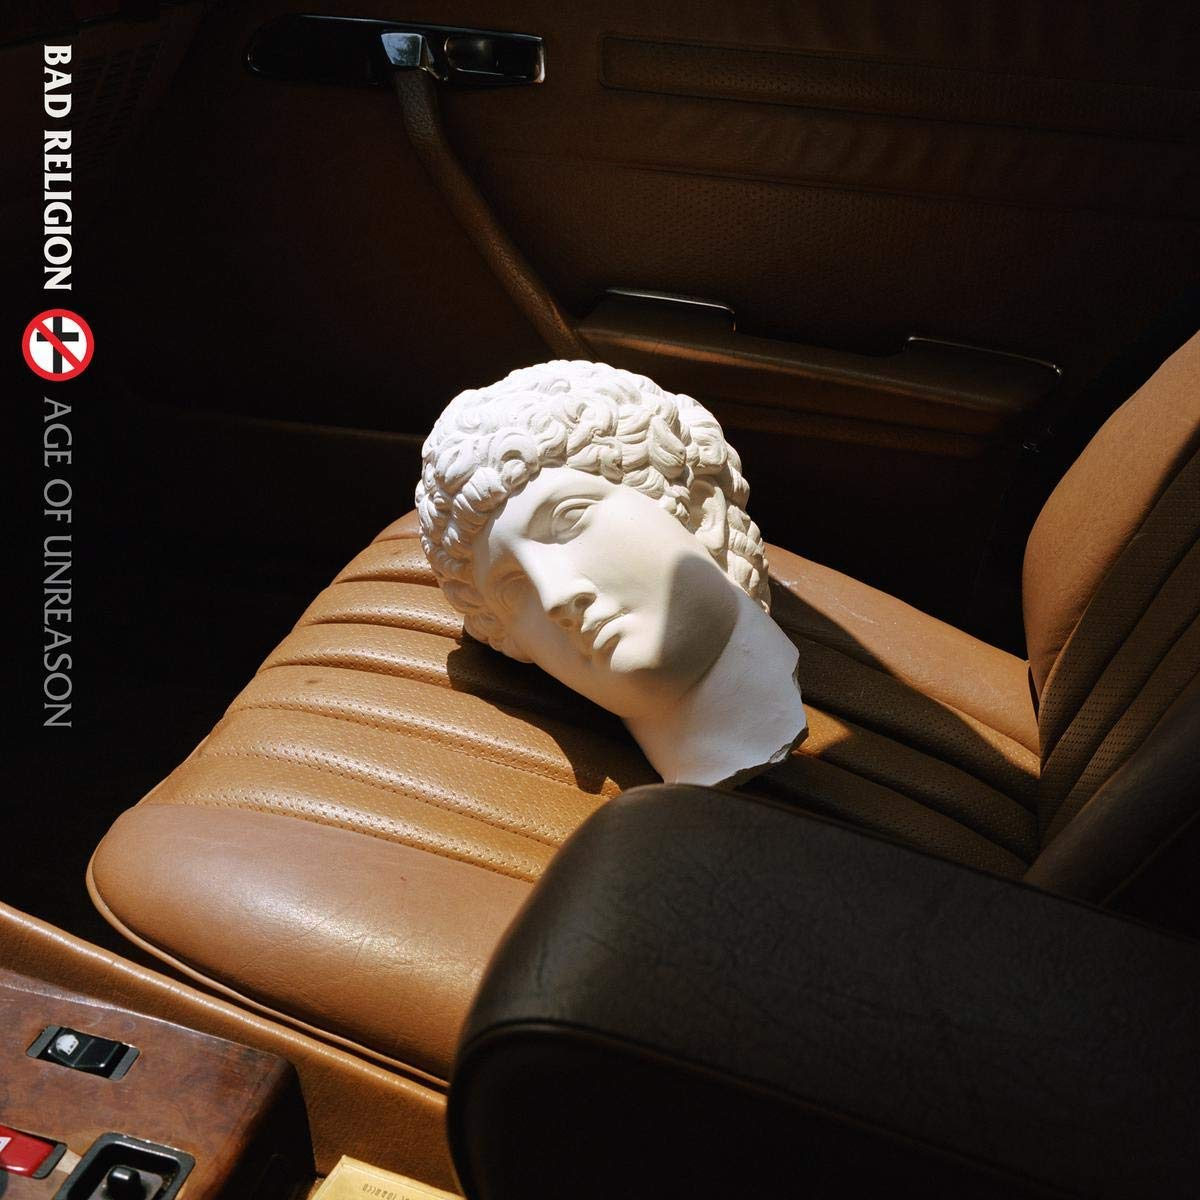 BAD RELIGION - AGE OF UNREASON (CD)